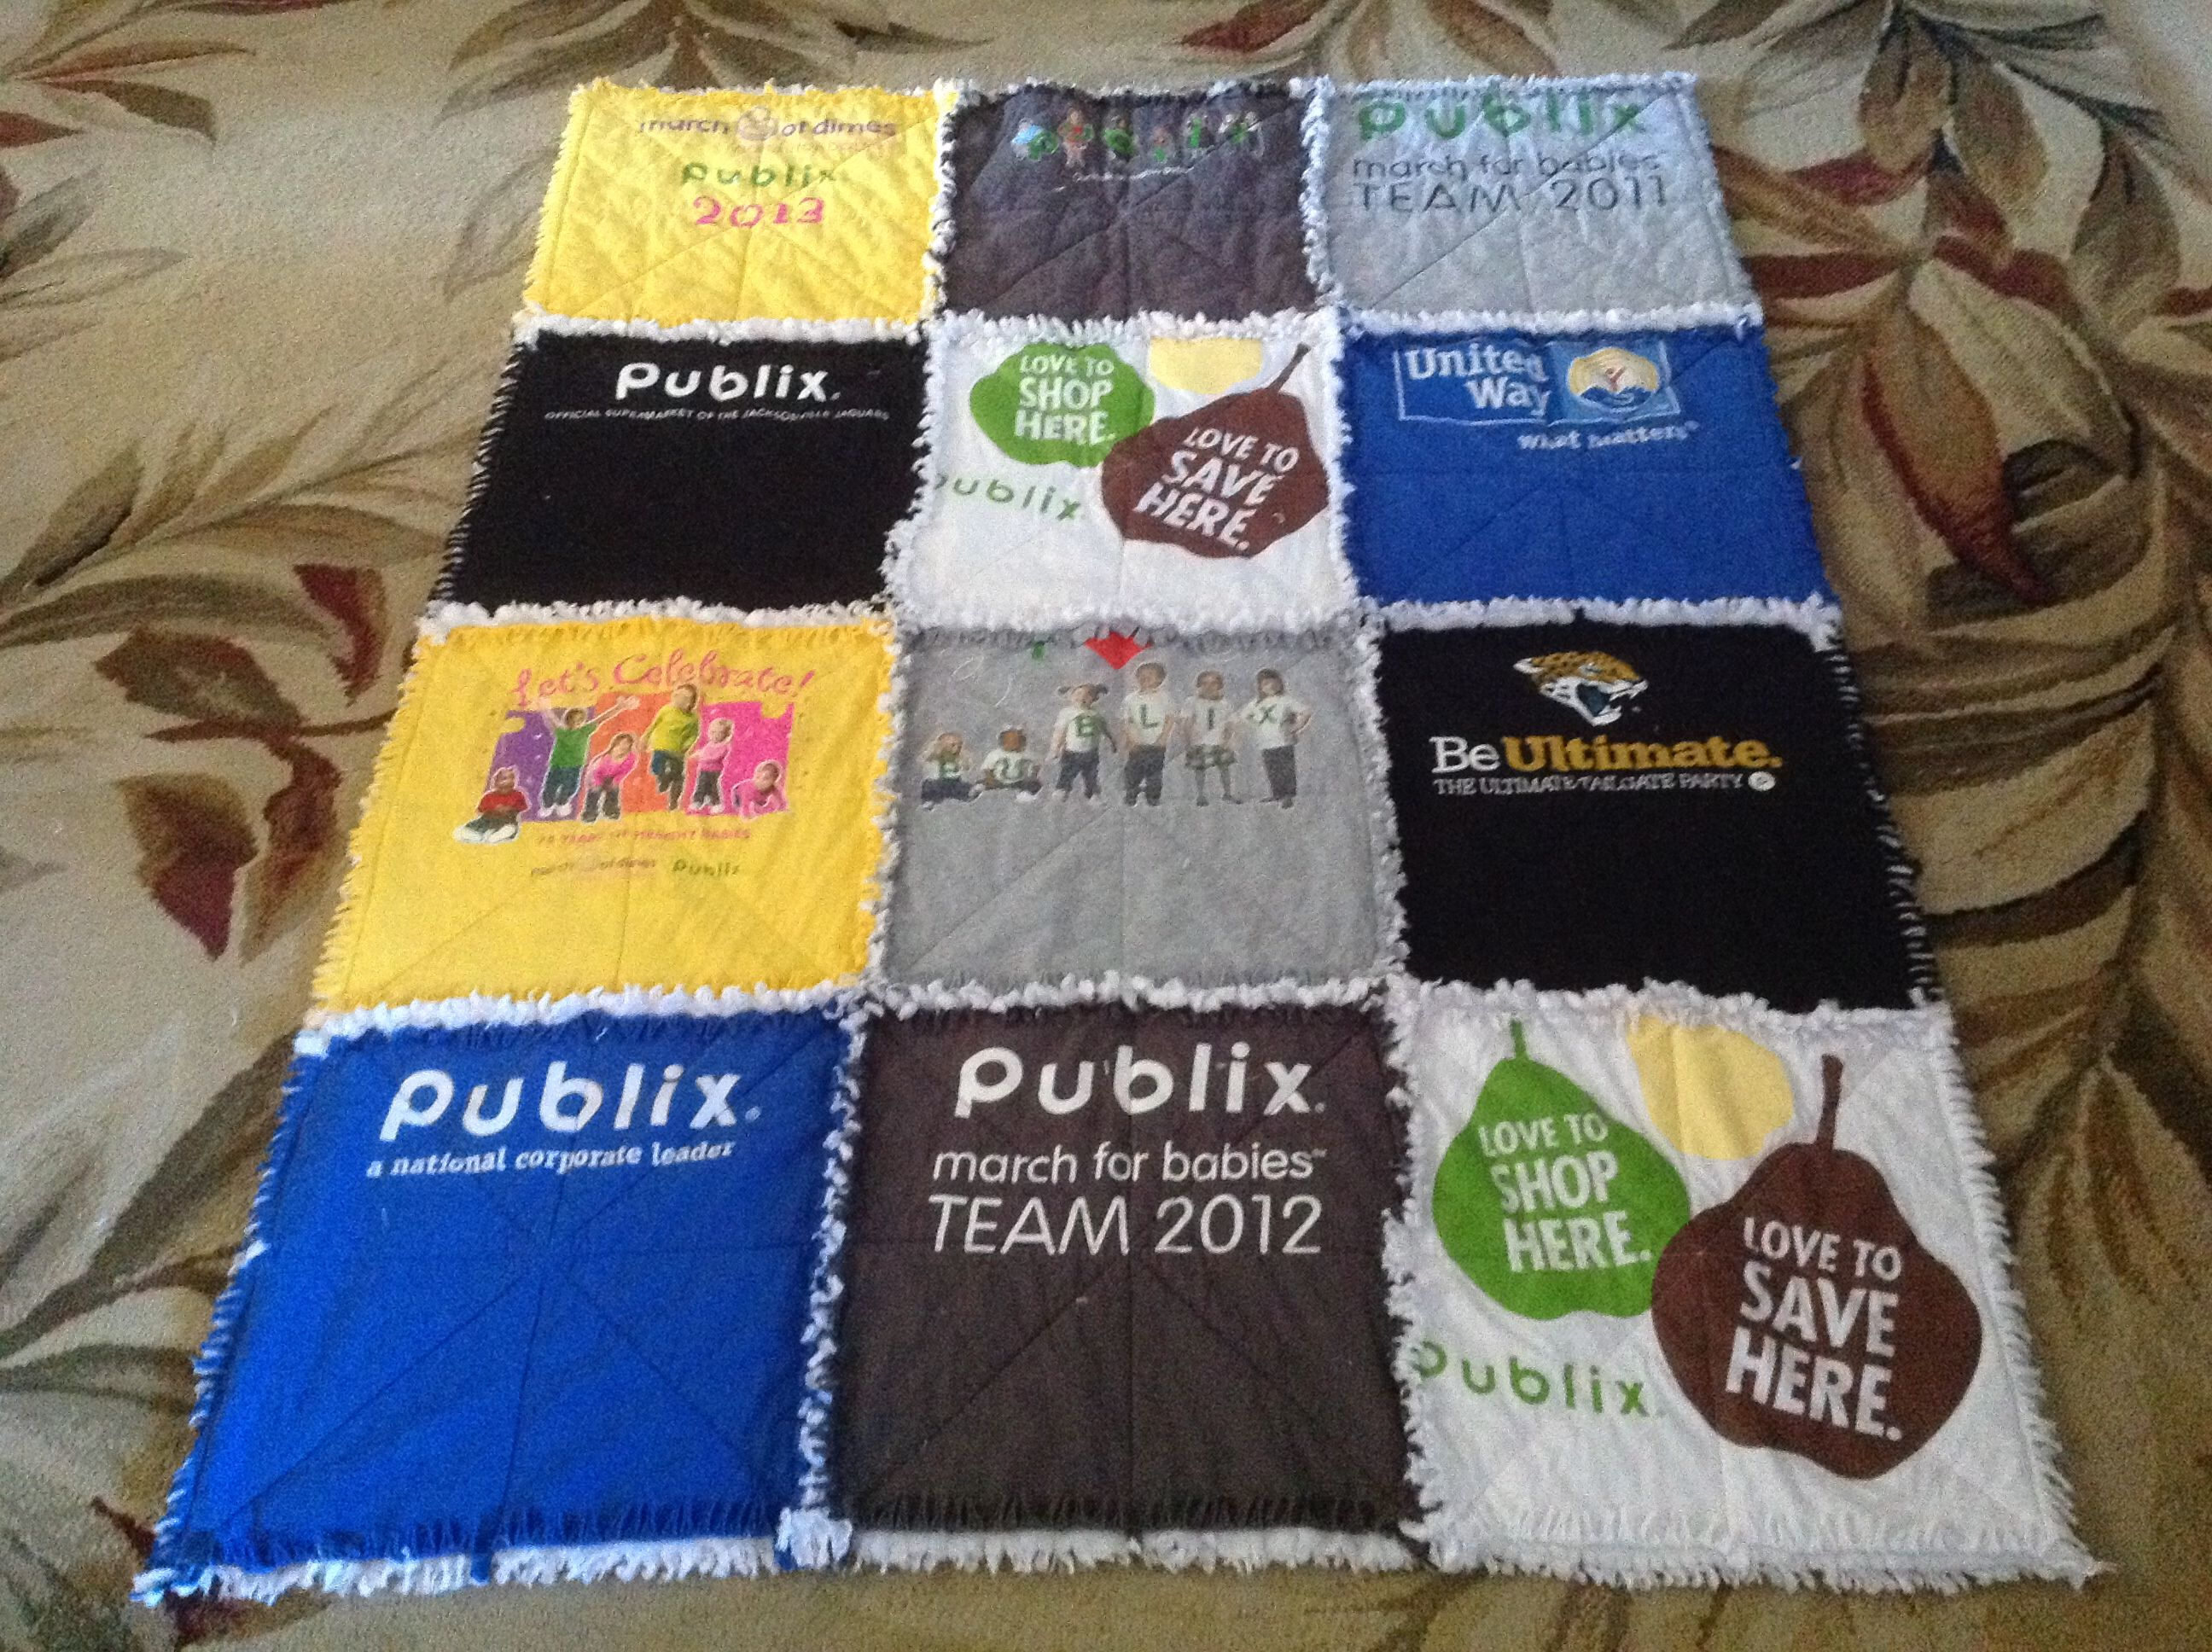 Publix Tshirt rag quilt. Made from event tshirts from